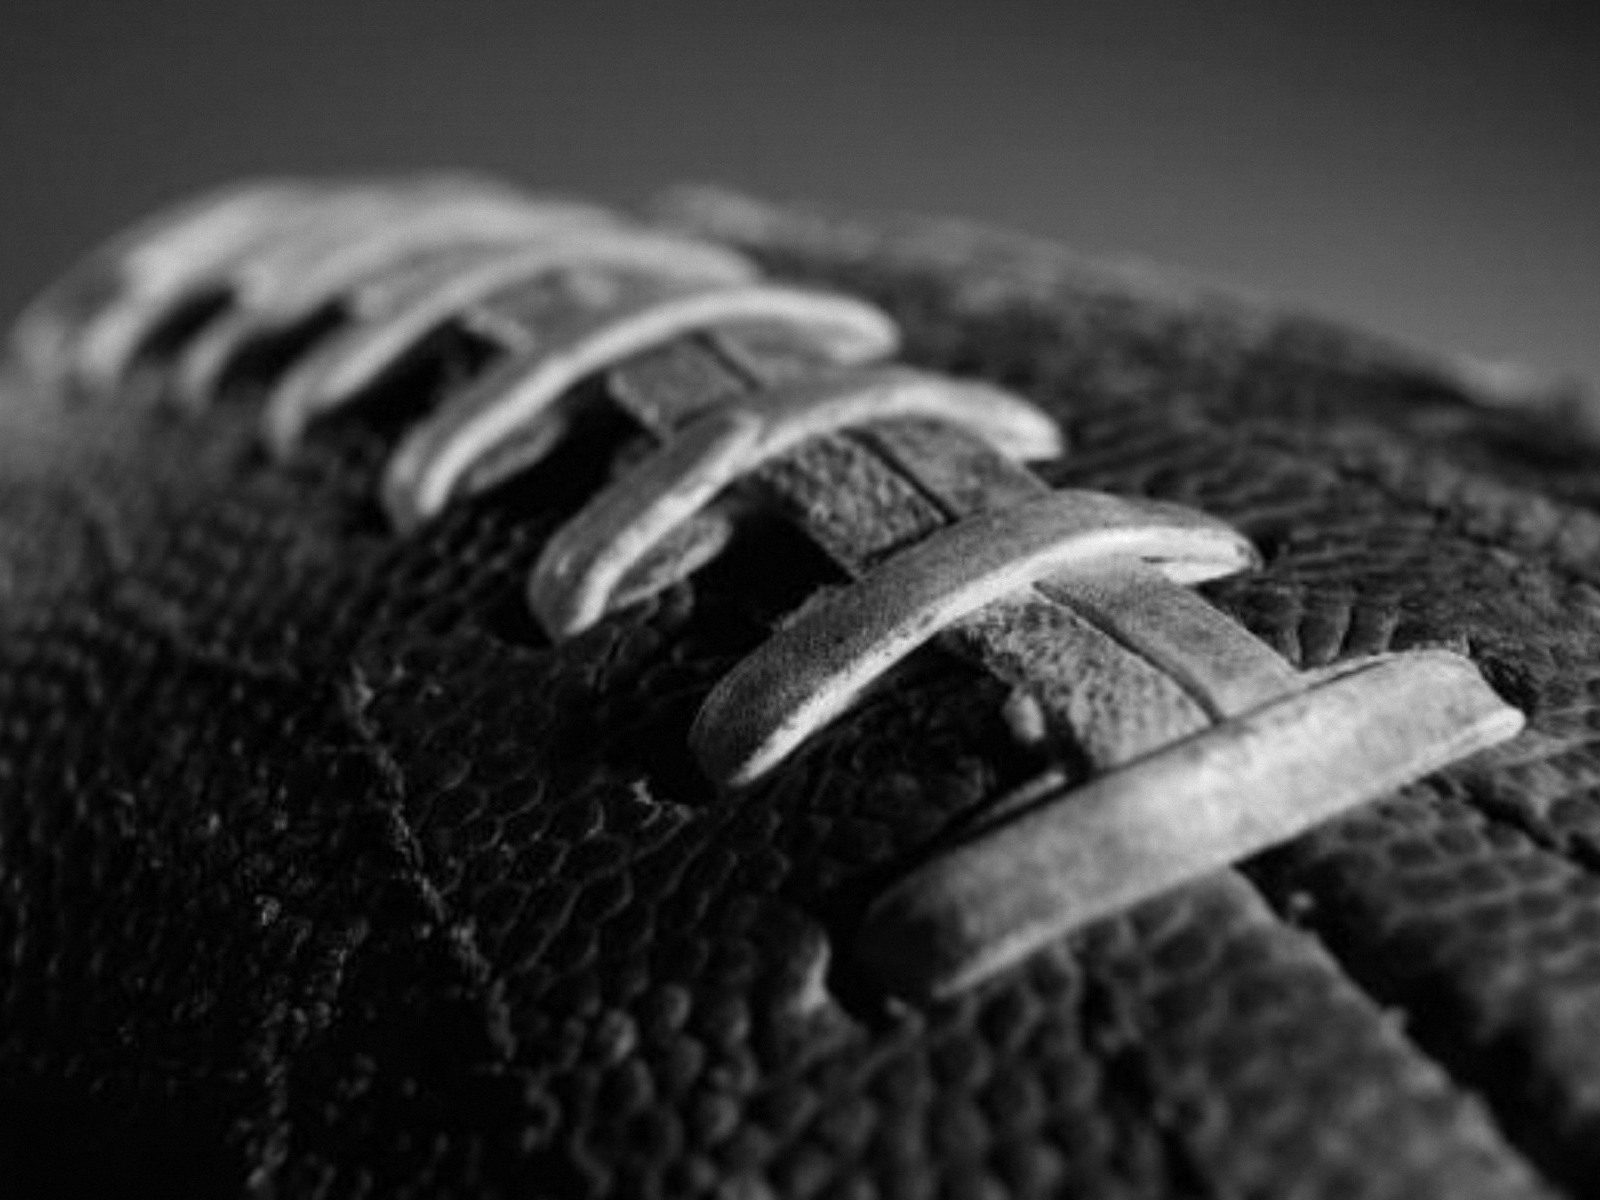 hd-wallpapers-american-football-ball-black-1600x1200-wallpaper